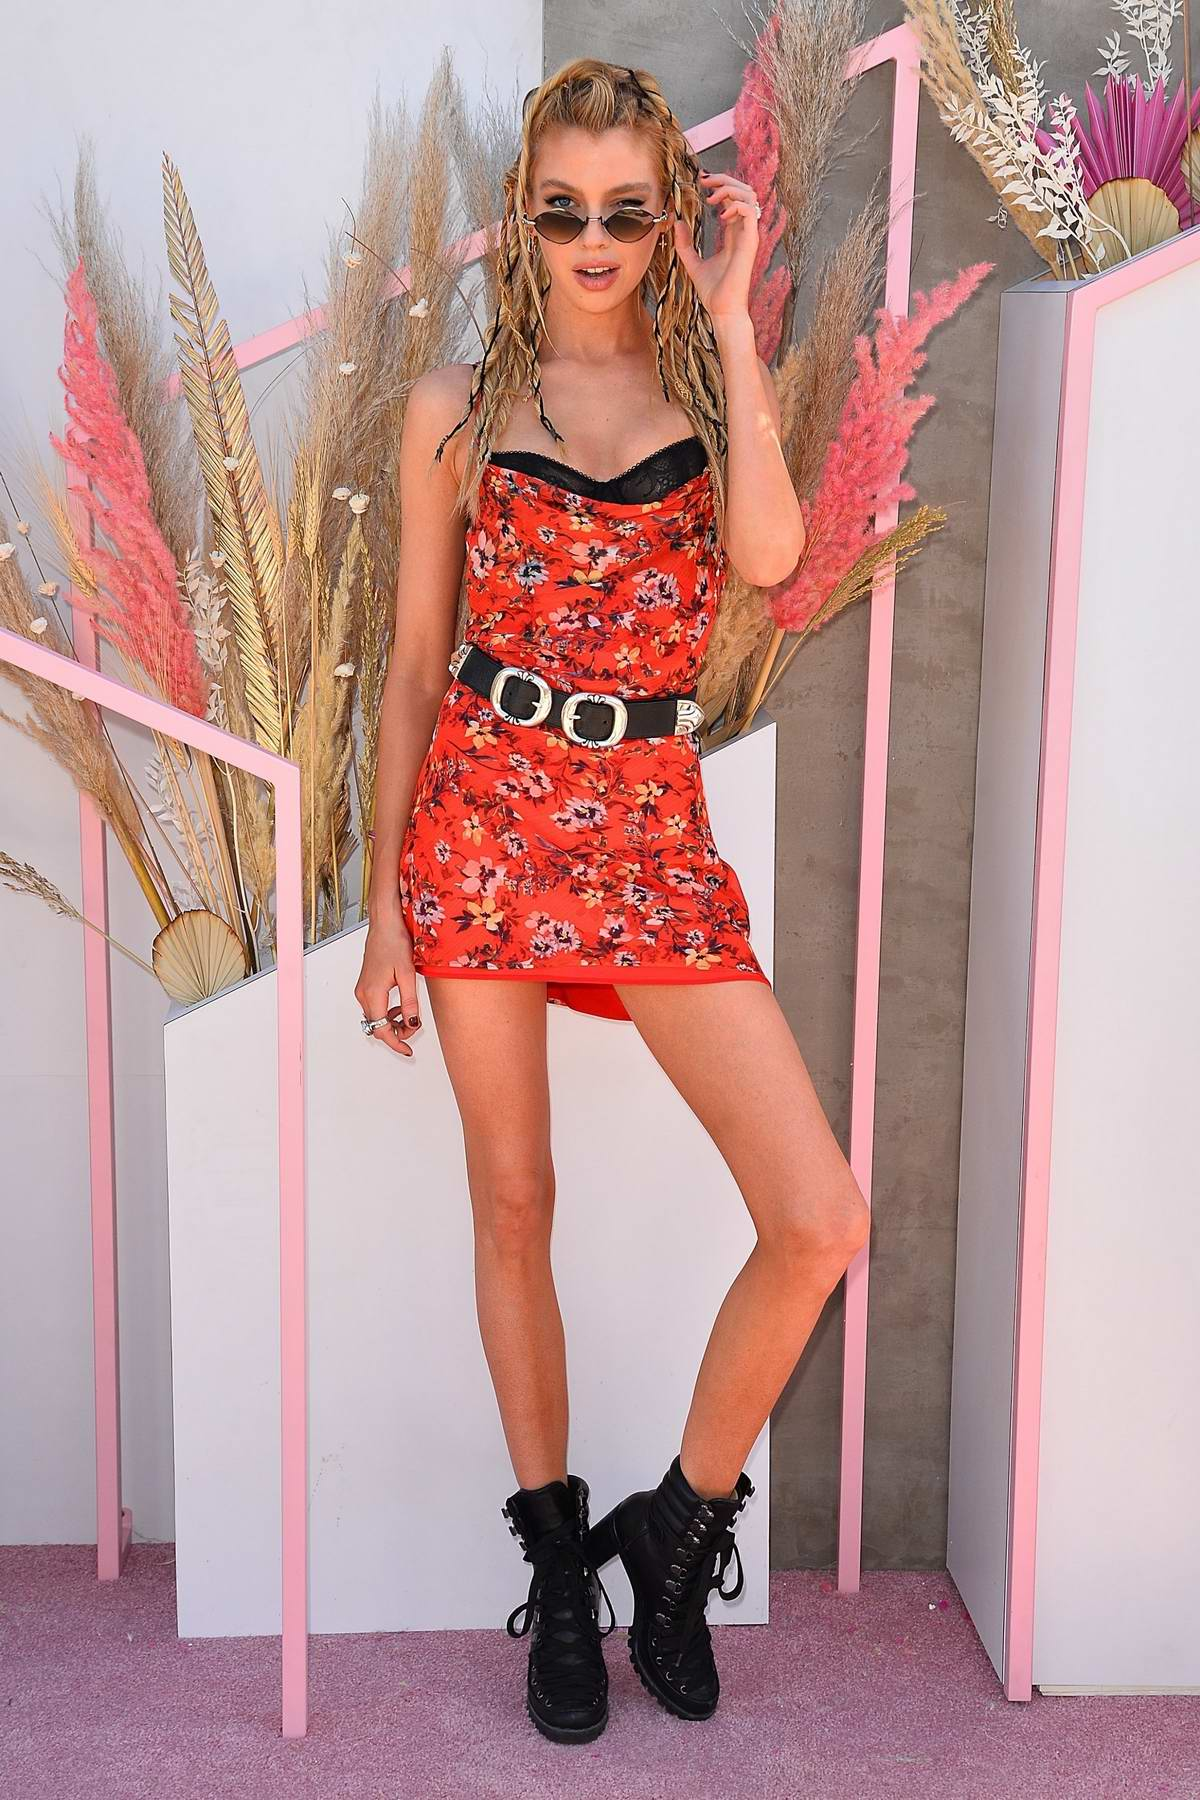 Stella Maxwell looks great in a red floral mini dress at the Revolve Festival during Coachella in Indio, California